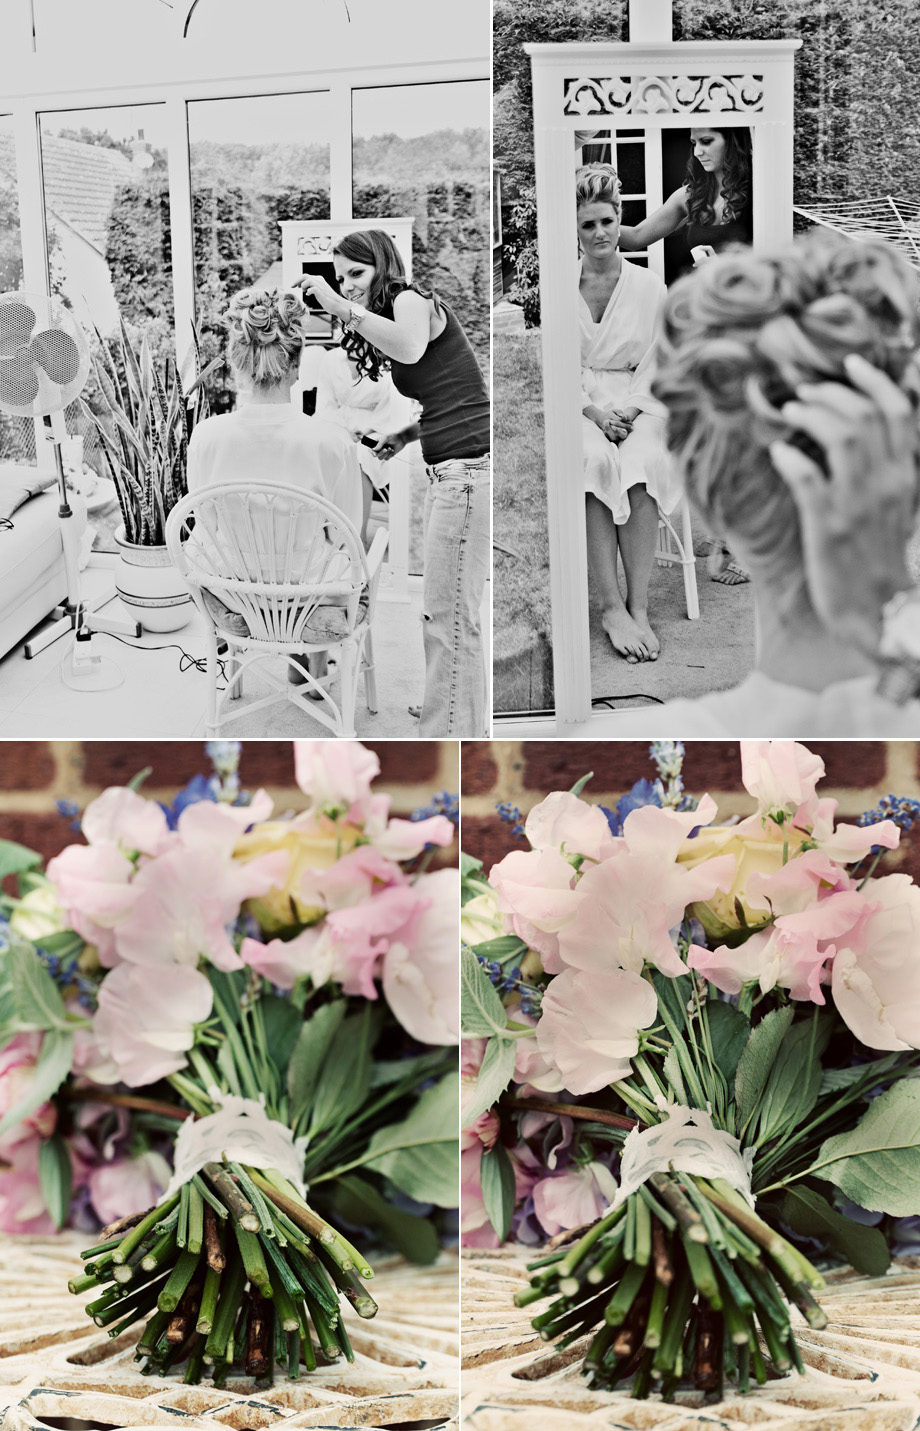 Stock weding bridal preparations and flowers